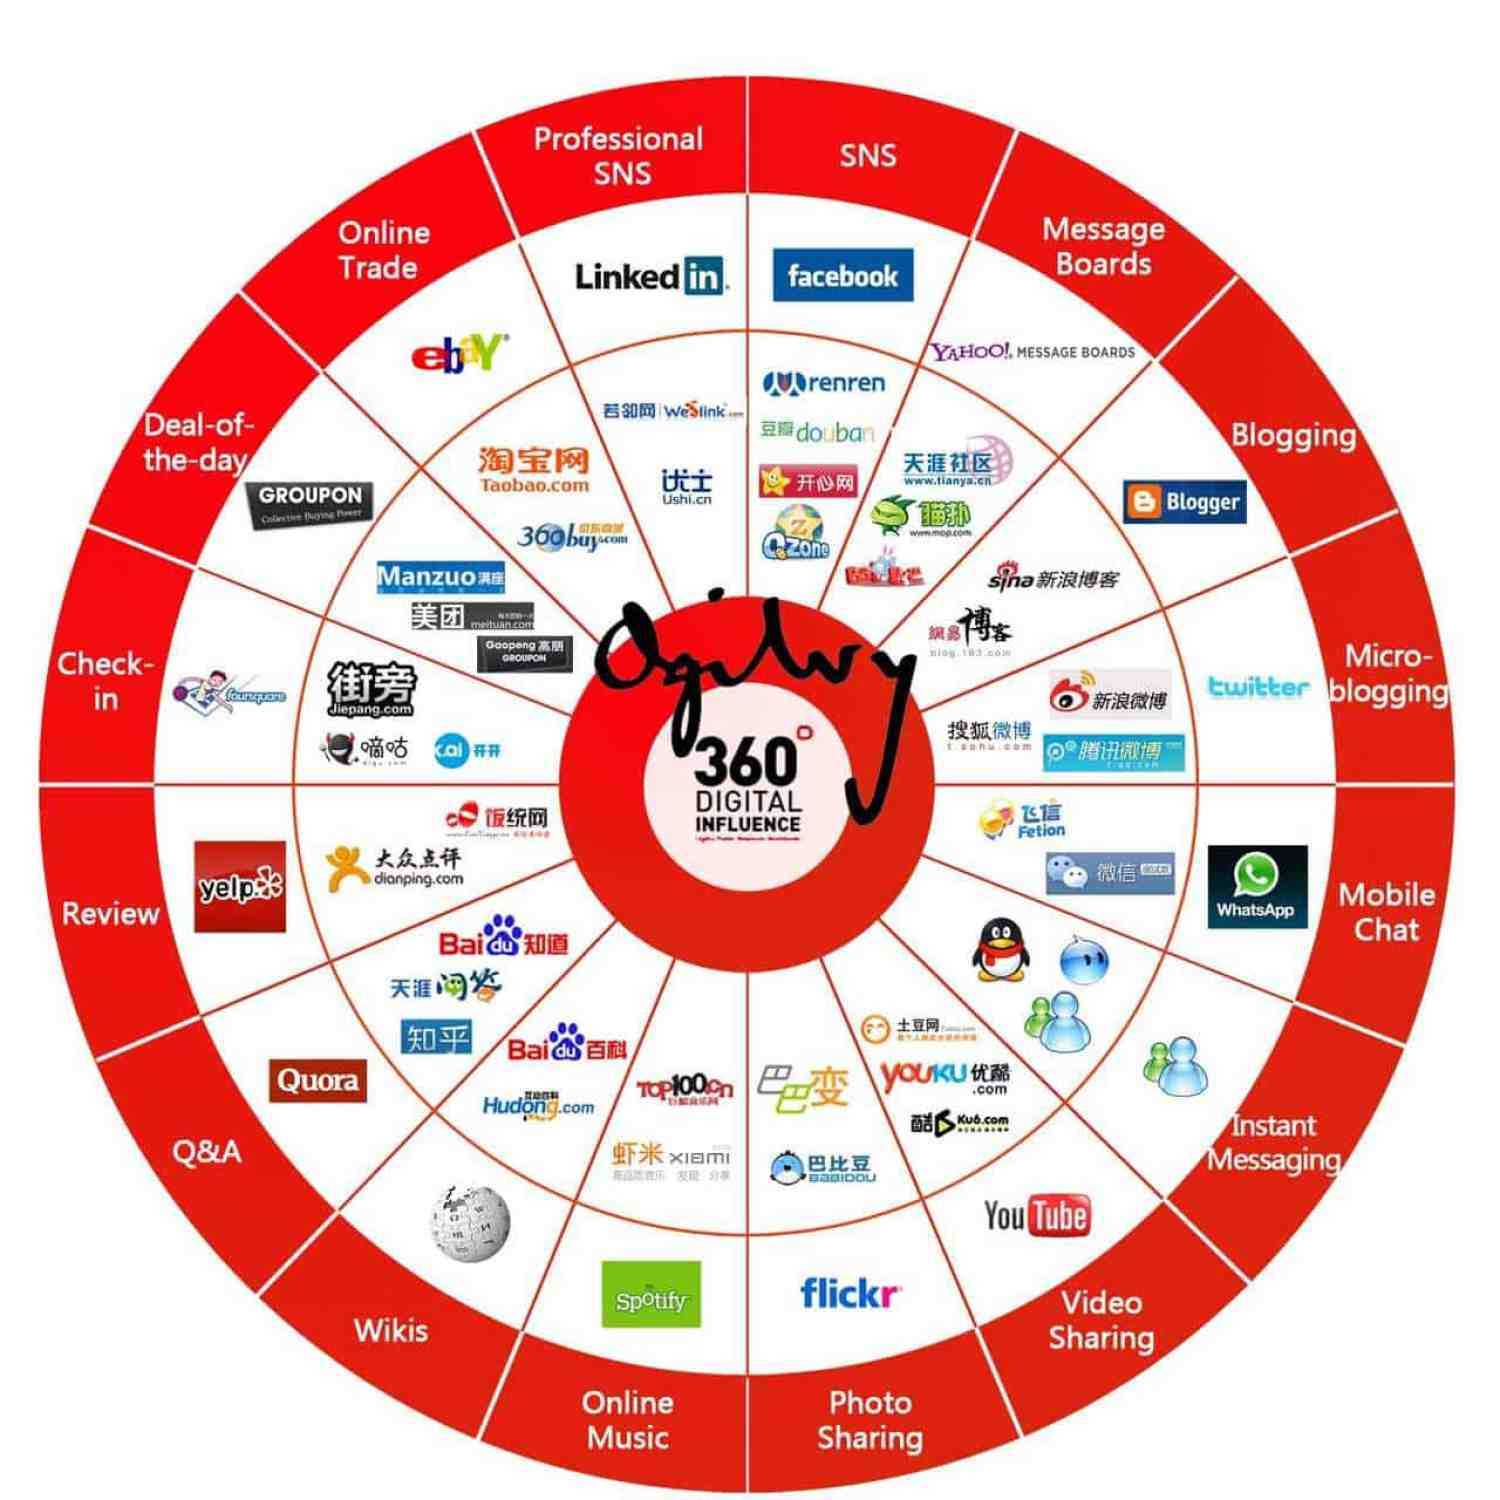 For a quick bird's-eye-view of the social media landscape in China, check out this great infographic.